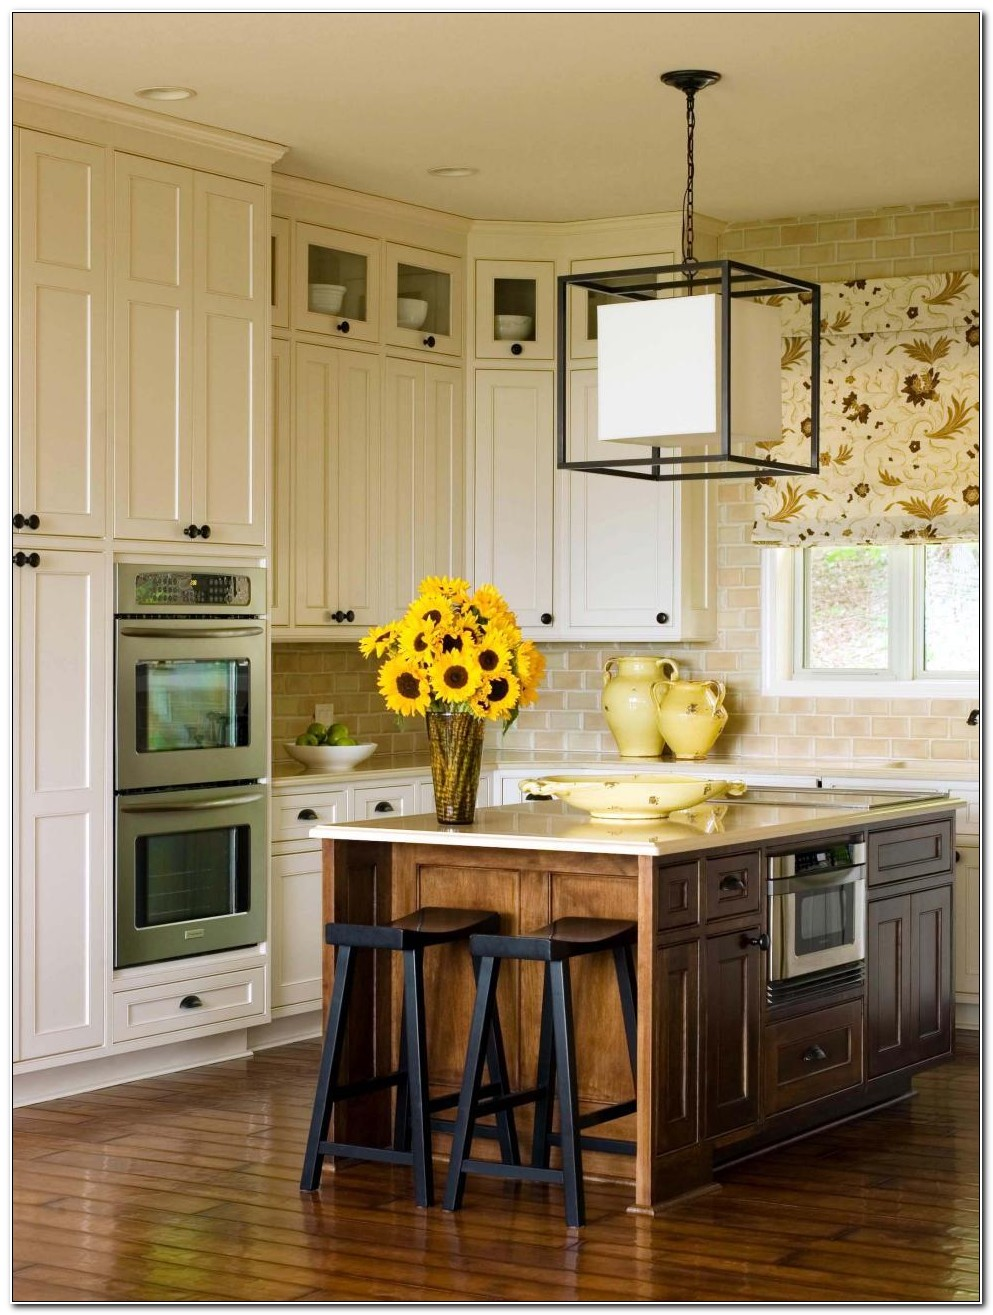 Should You Replace Or Reface Kitchen Cabinets